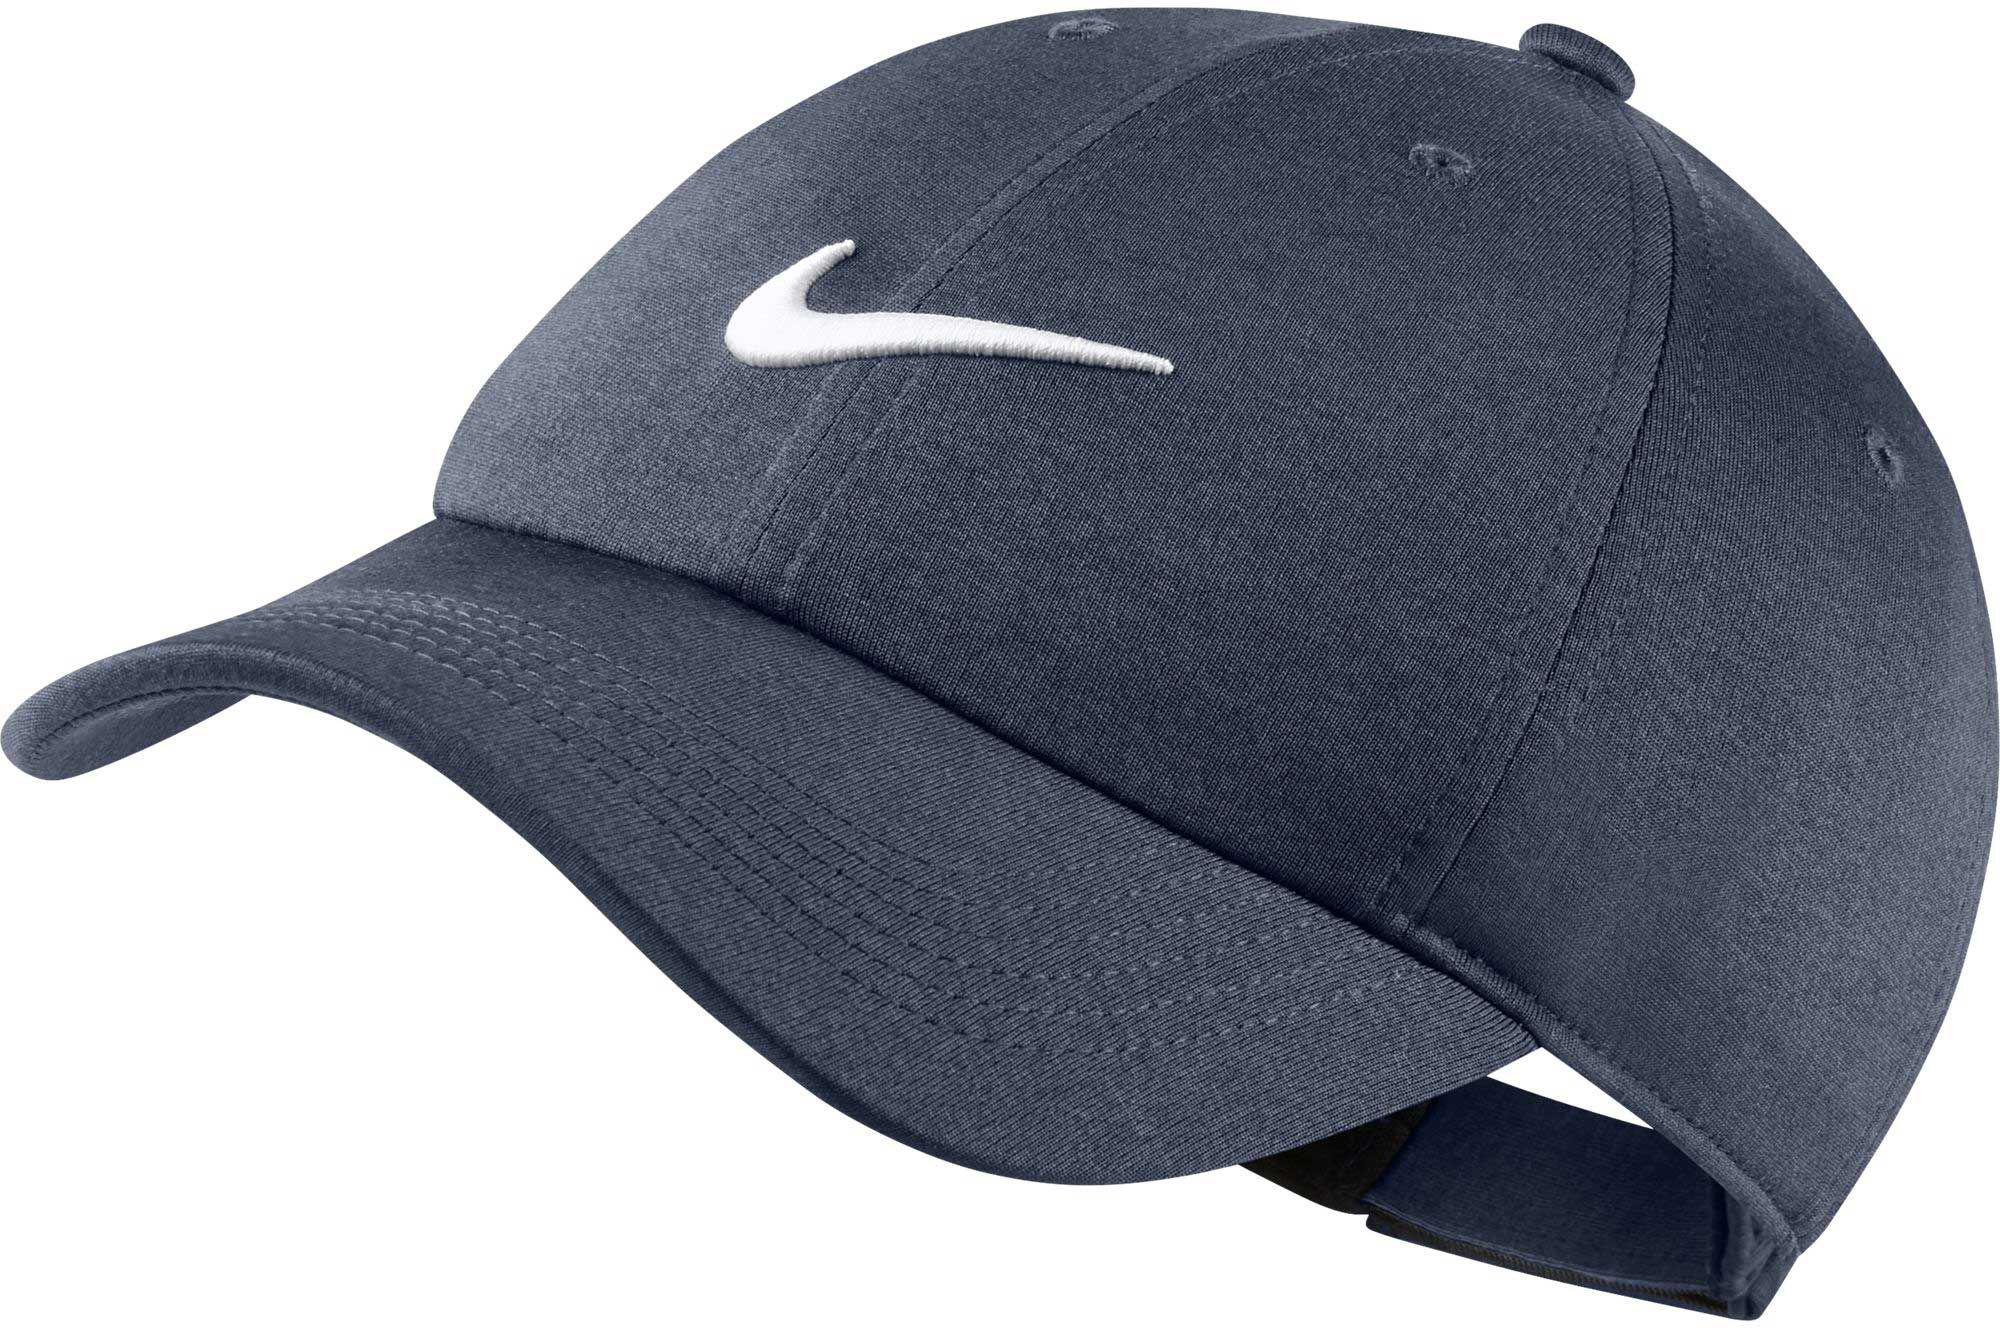 441c66d3a2b Lyst - Nike Aerobill Heritage86 Adjustable Hat in Blue for Men